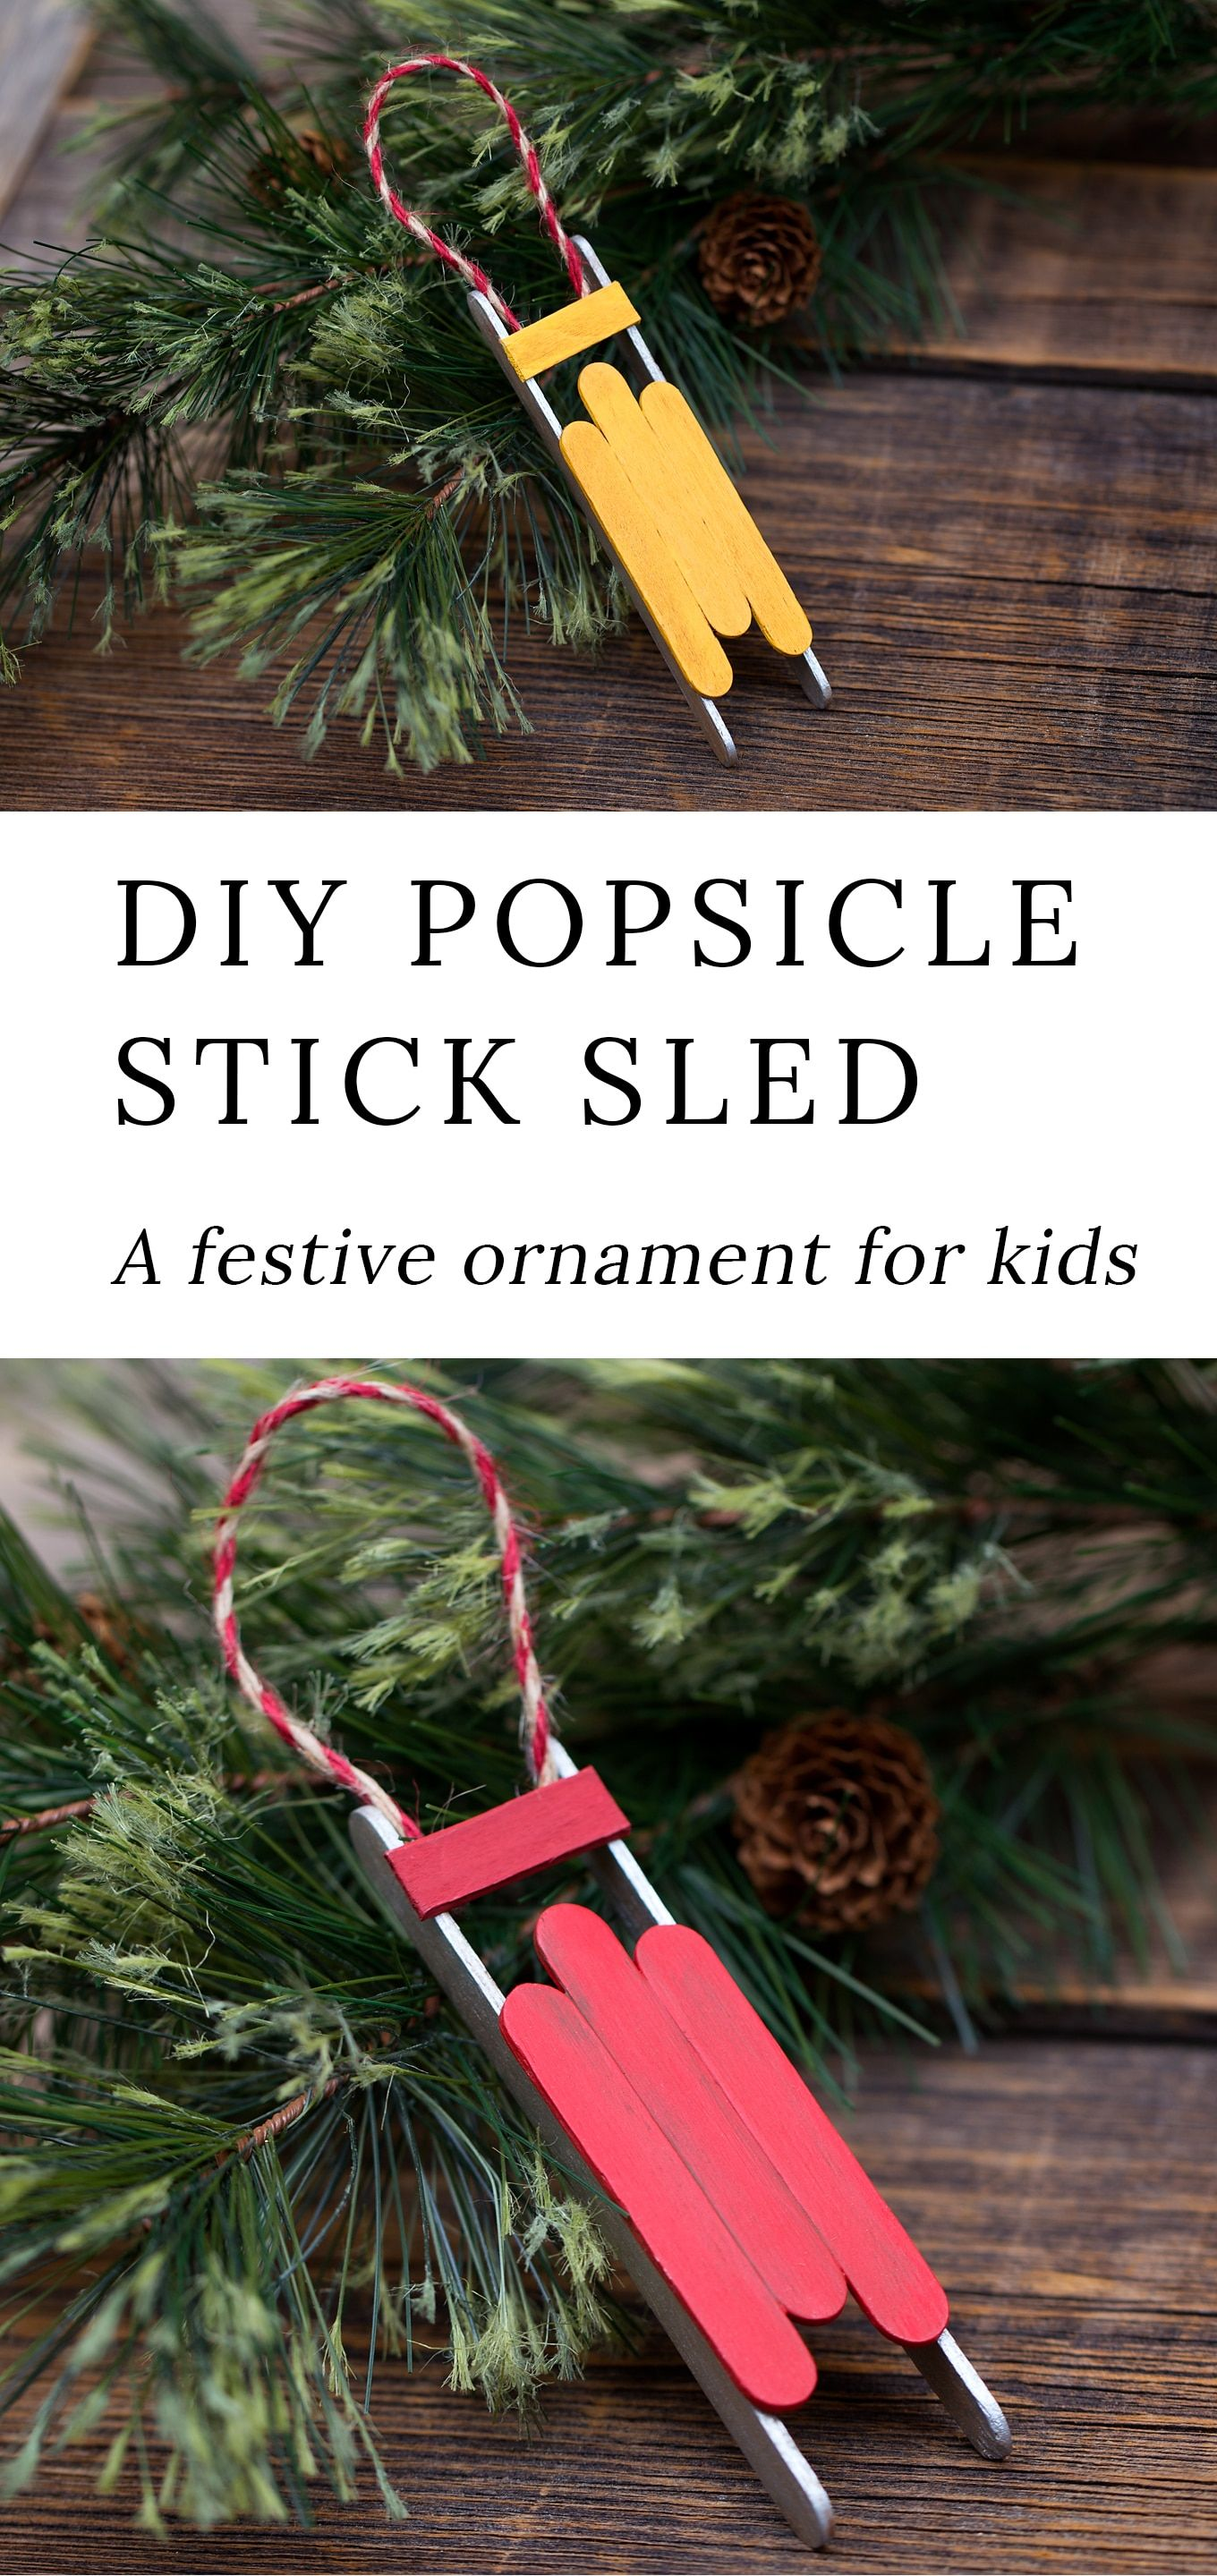 How to Make a Wooden Popsicle Stick Sled Ornament